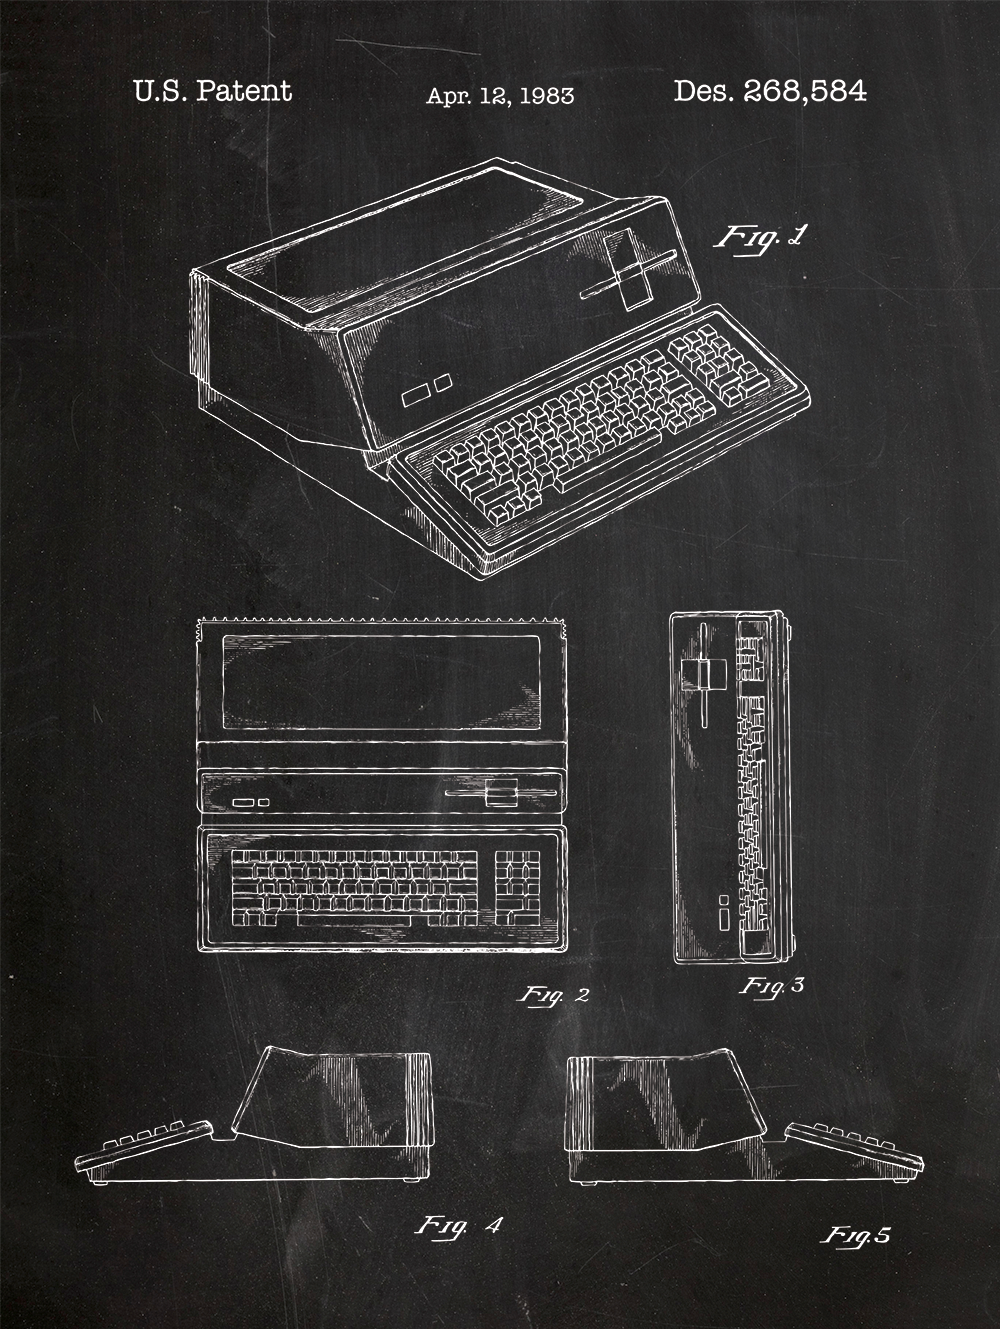 Apple iii patent print on chalkboard background art tech and apple 1983 computer patent poster screen print decoration technical invention design blueprint schematic retro educational screenprint malvernweather Images